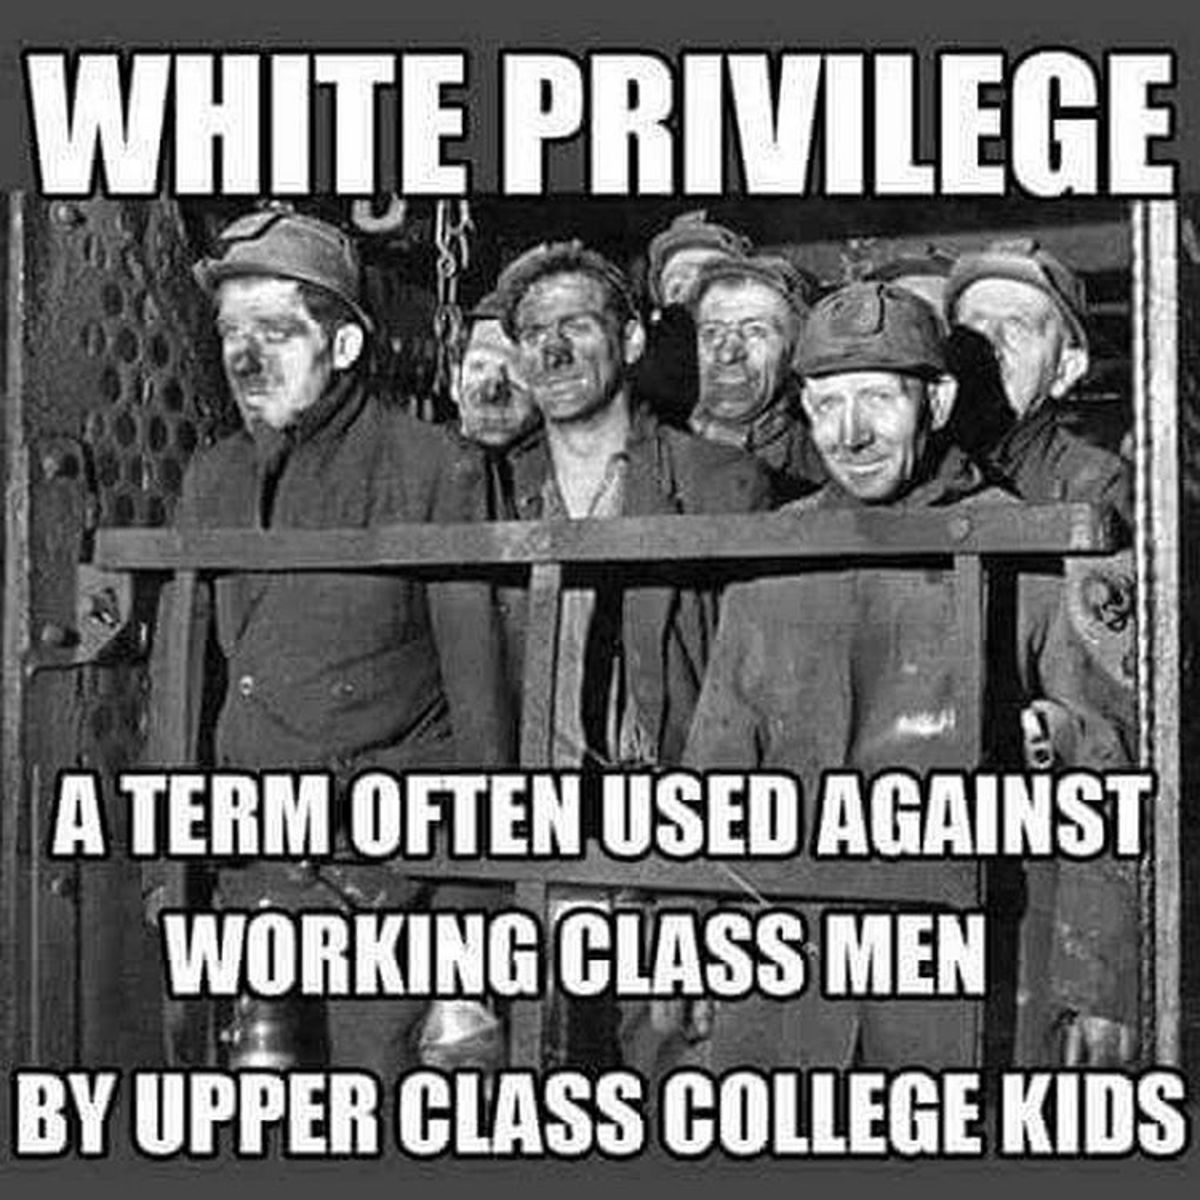 White Privilege: Much Ado About Nothing